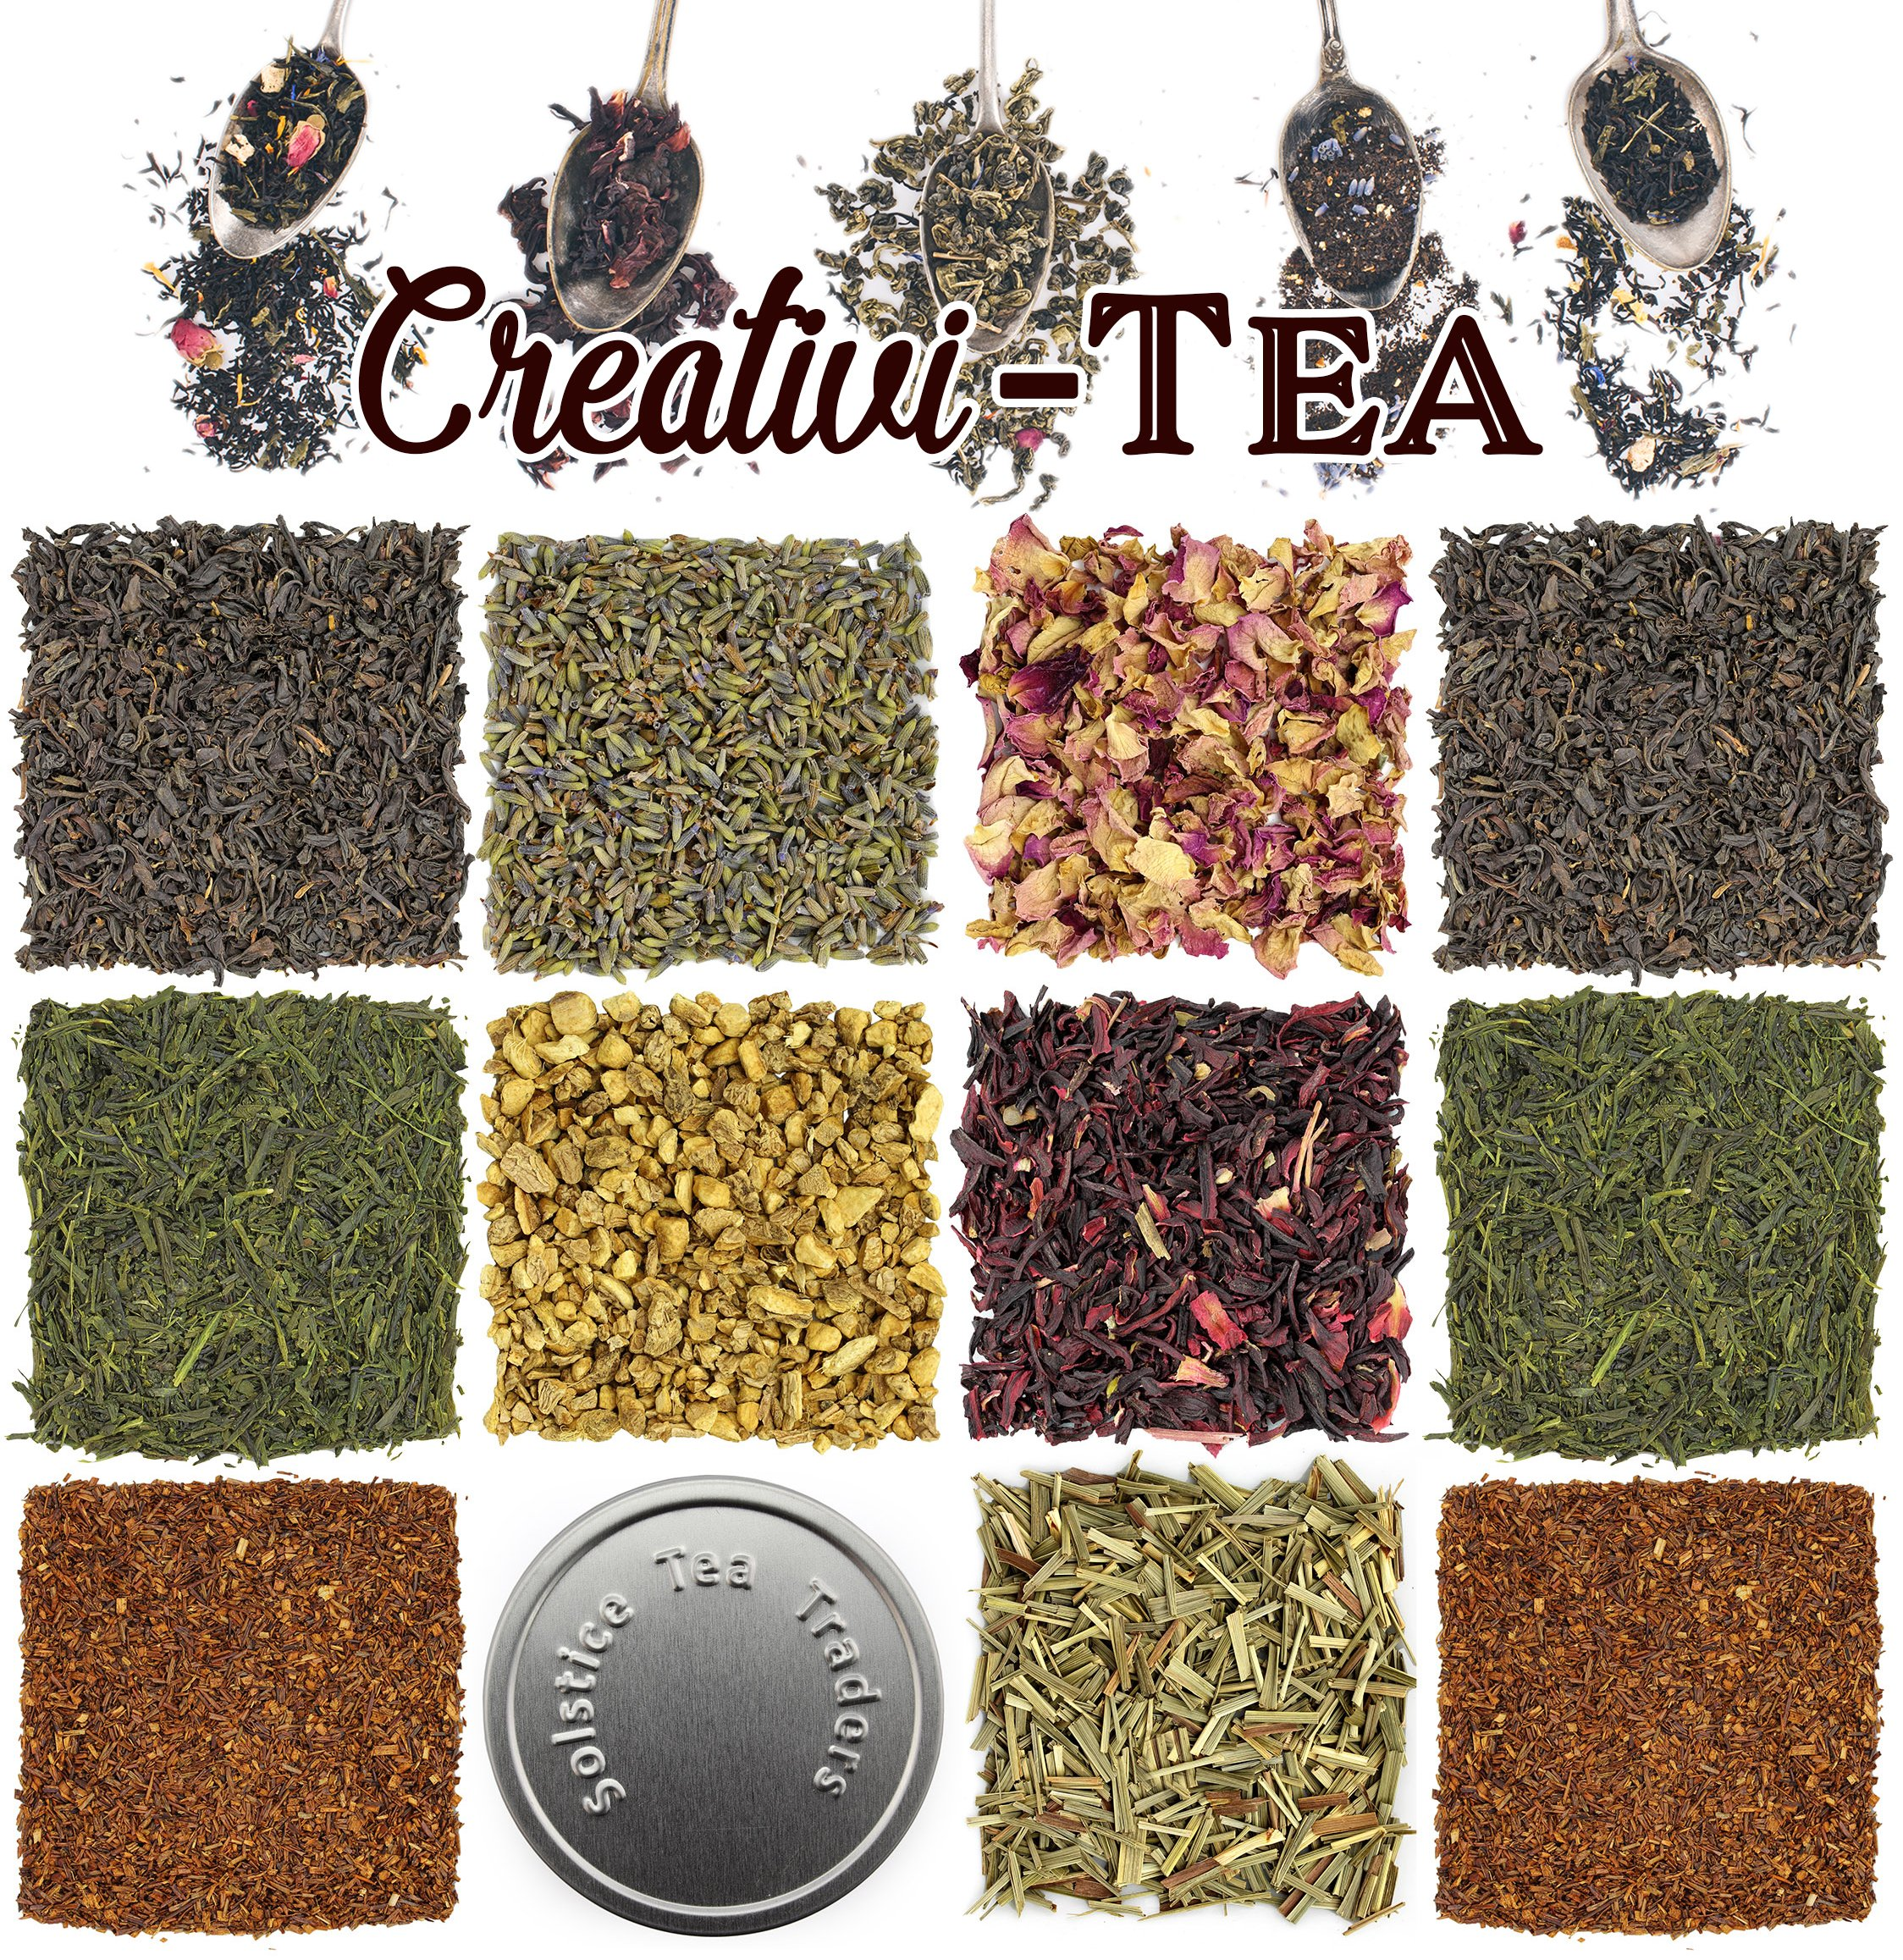 Loose Leaf Tea Sampler Gift Set Assortment - Create Your Own Tea Blend Starter Kit w/Sencha, Rooibos, China Black, Ginger, Lavender, Rose, Lemongrass, Hibiscus Spices Approx 75+ Cups